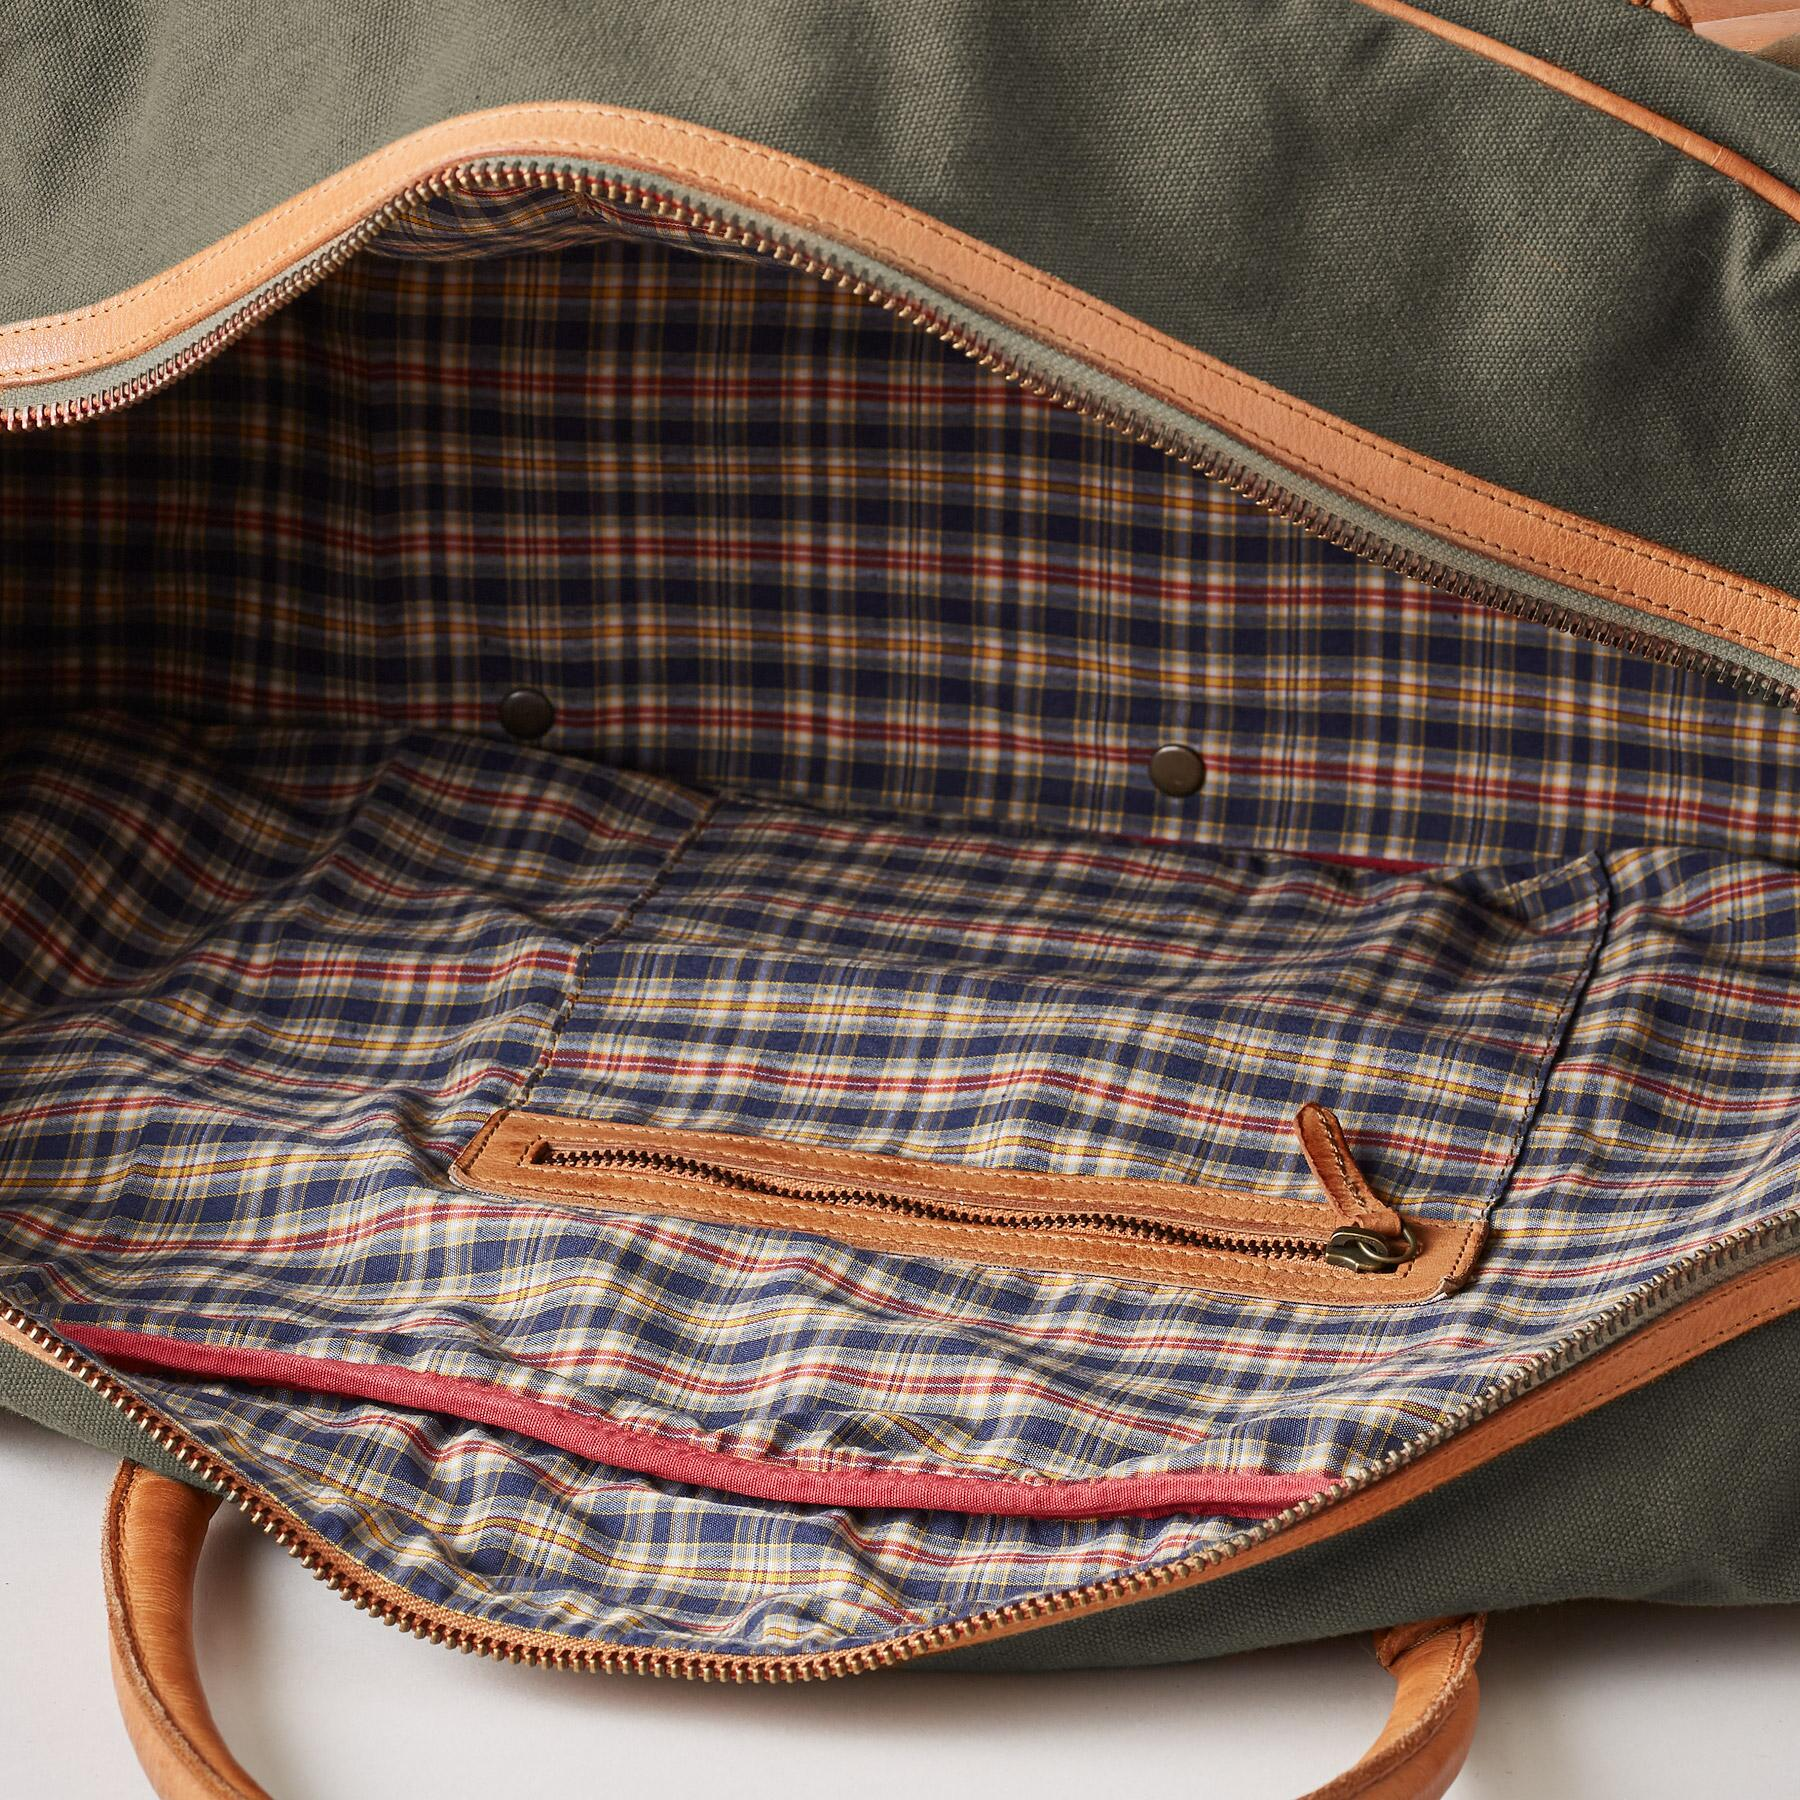 THE TRAVELER'S DUFFEL BAG: View 3